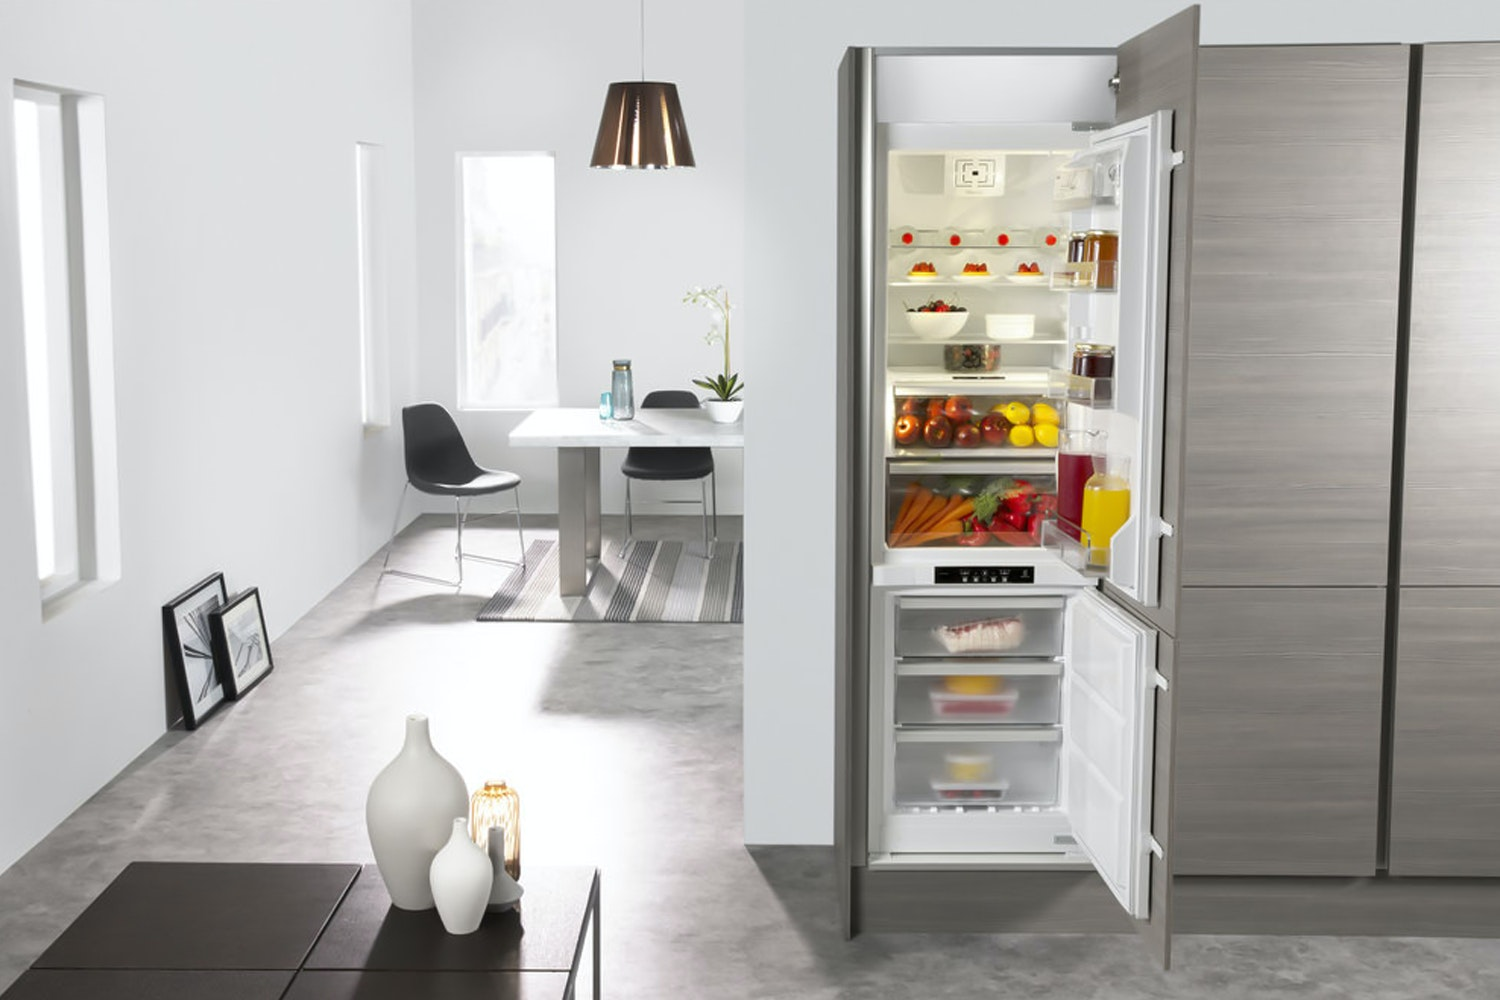 Whirlpool Built In Fridge Freezer | ART201/63A+/NF